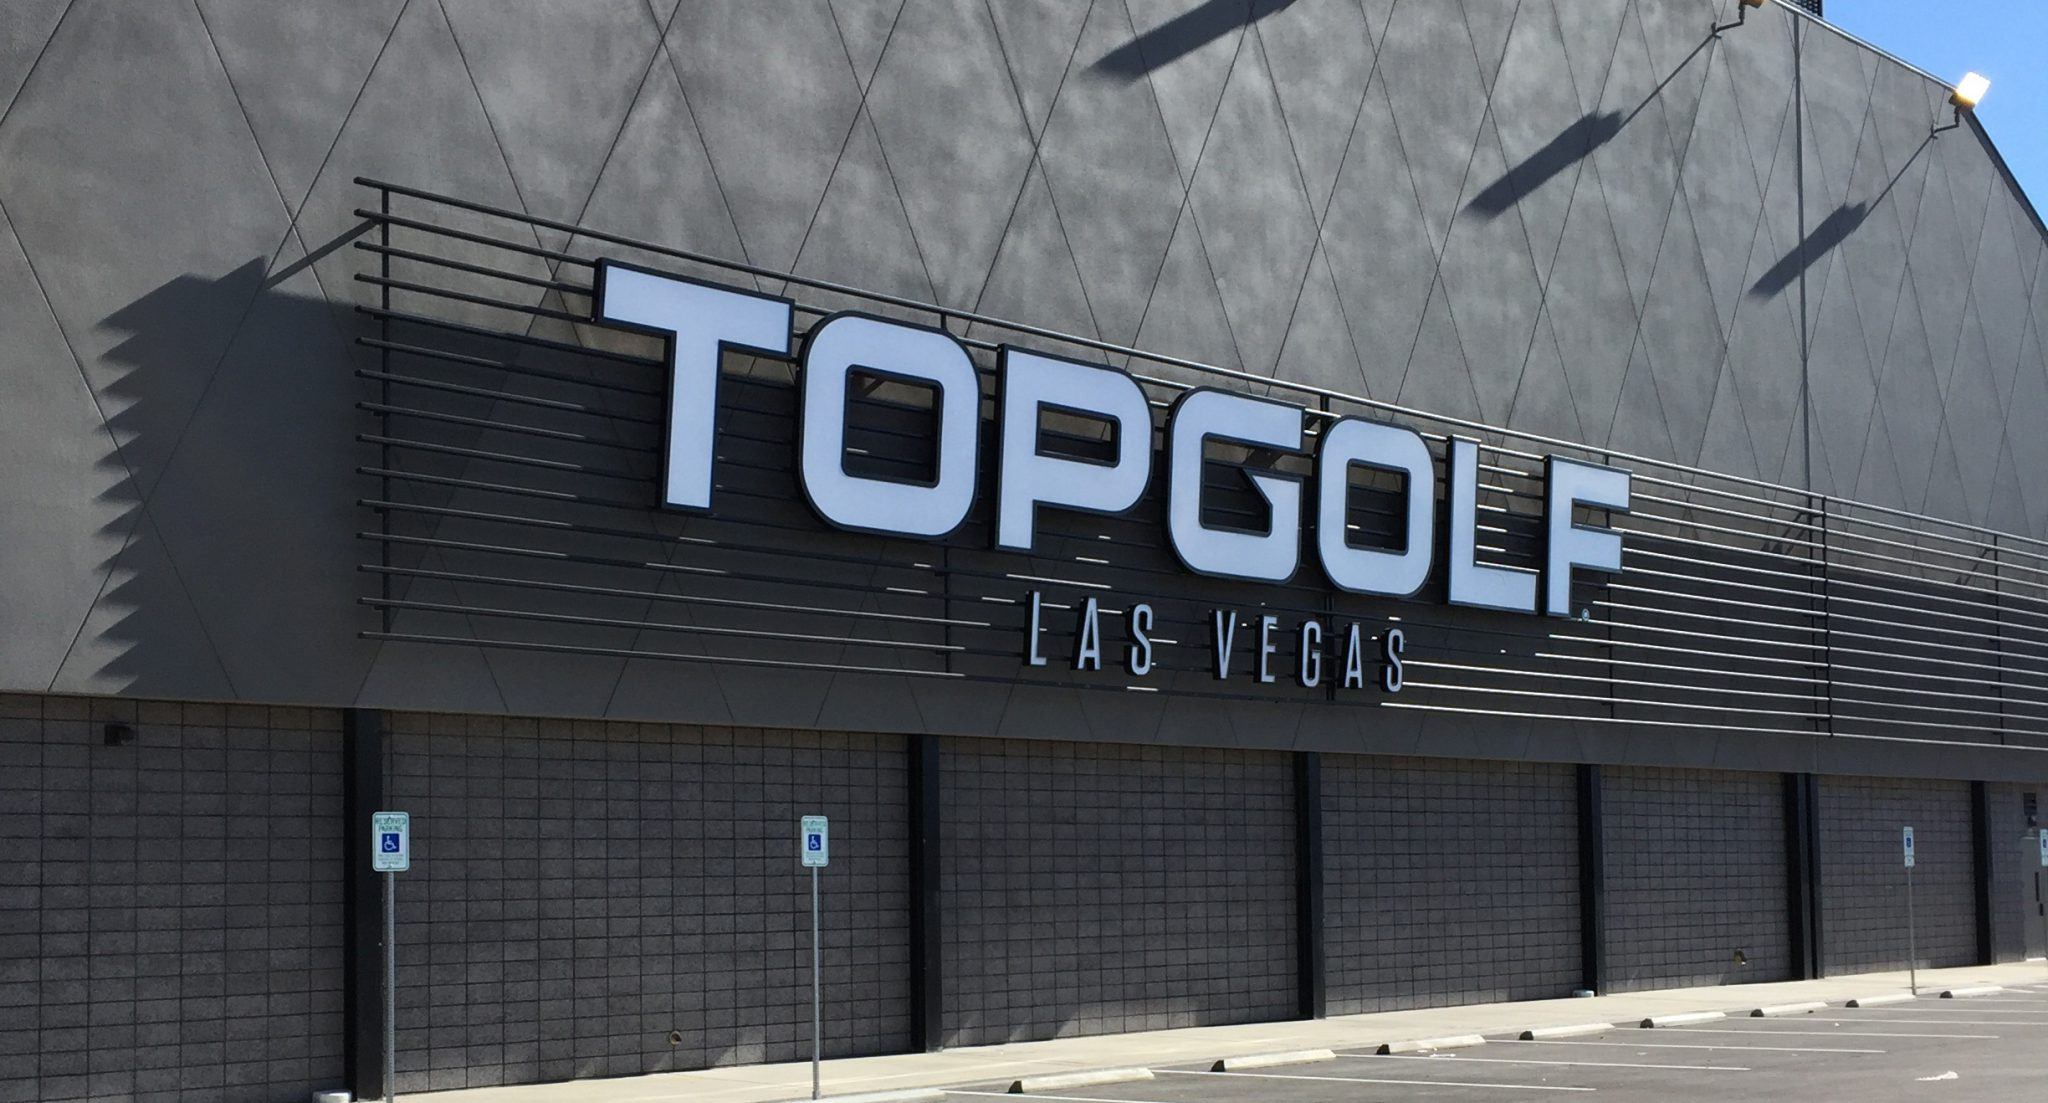 Topgolf Las Vegas Hits a Hole-in-One